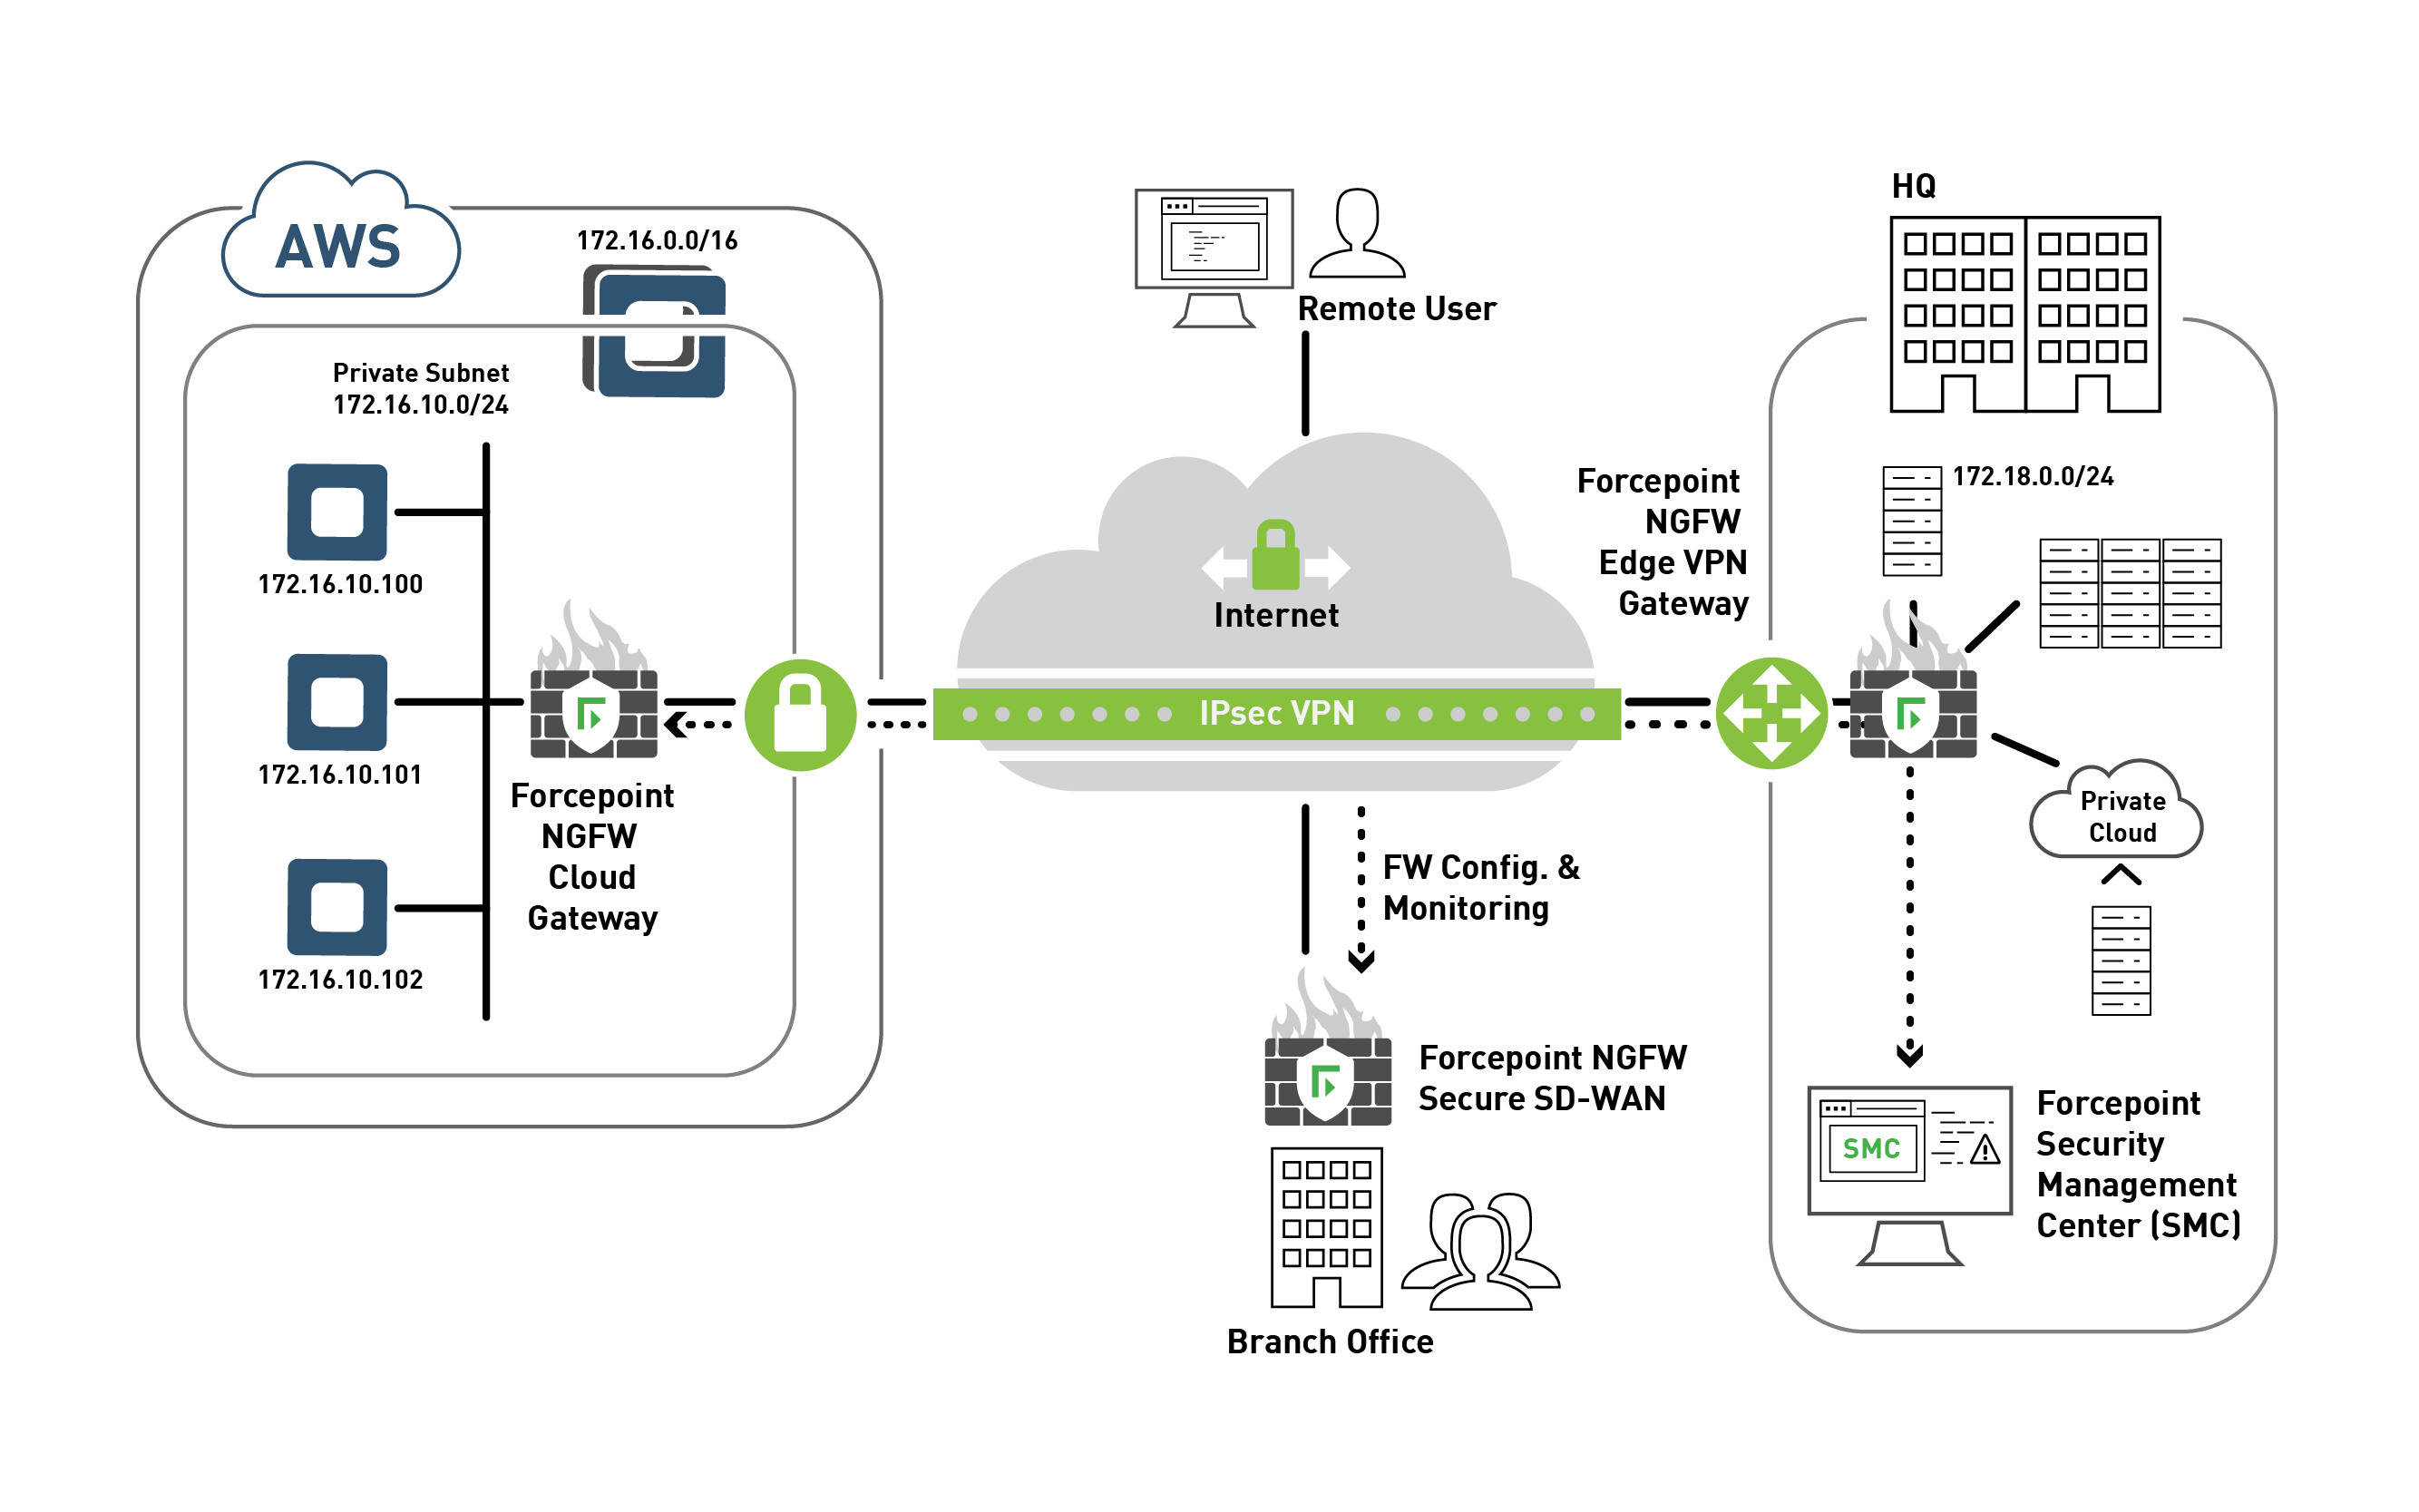 How To Configure An Ikev1 Ipsec Vpn To An Aws Vpn Gateway